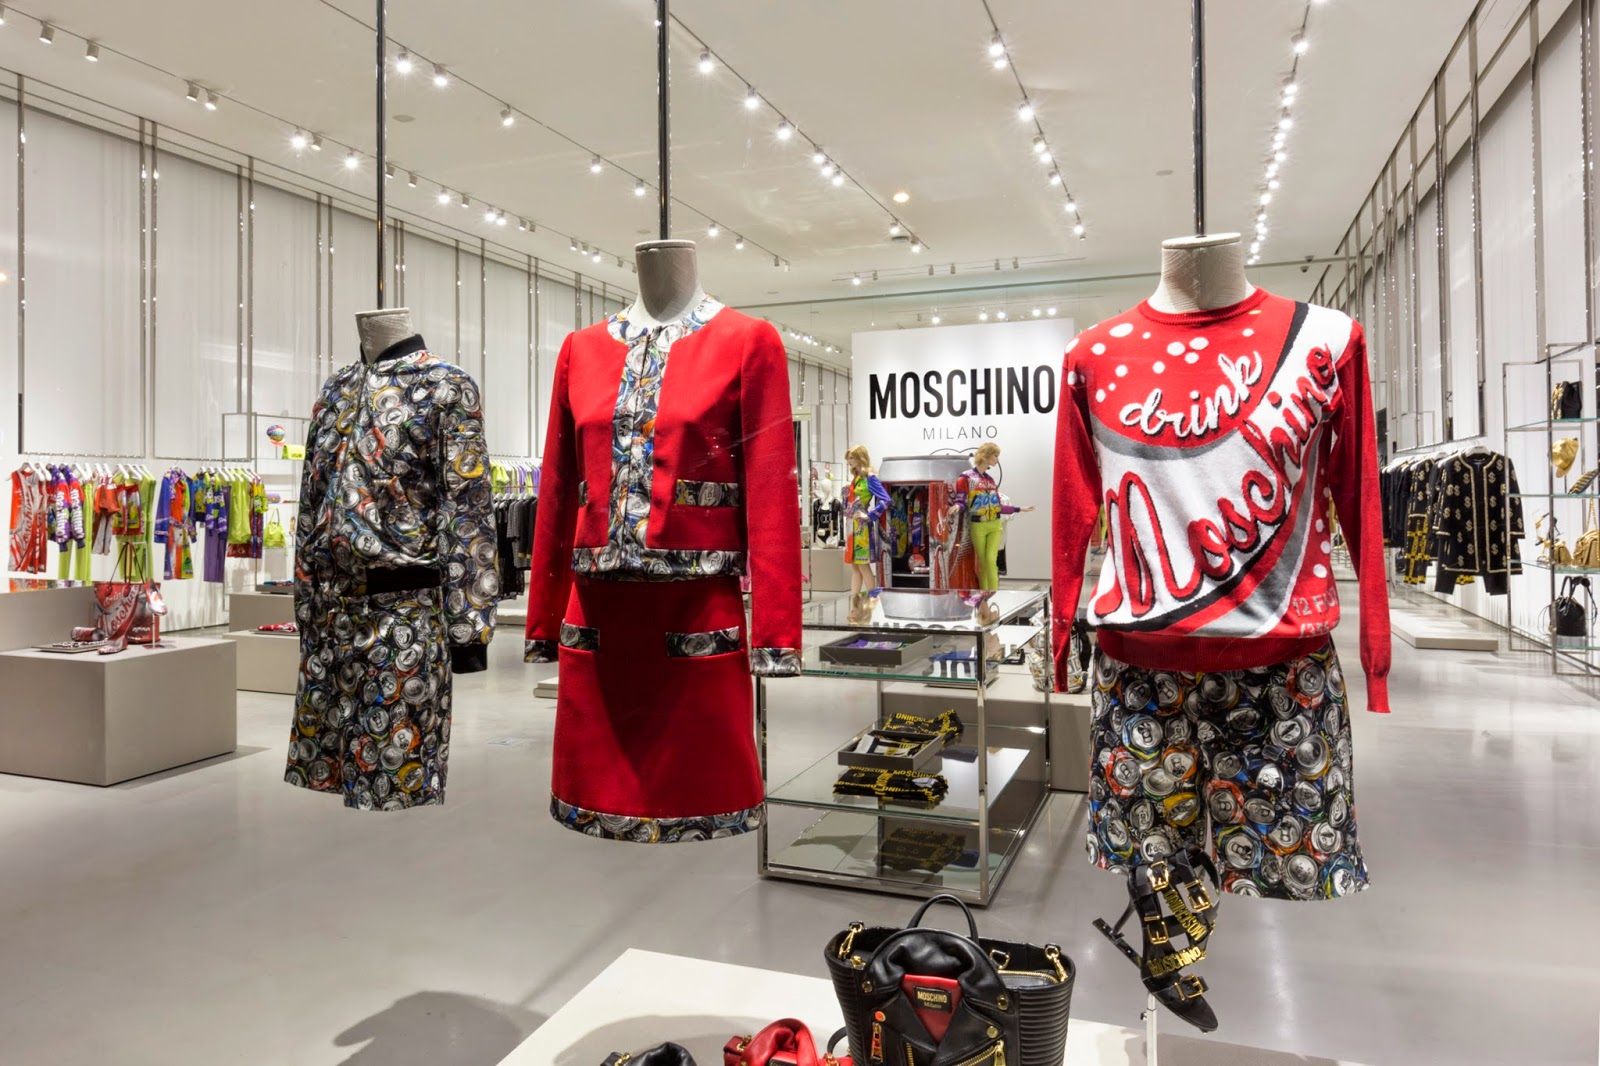 Moschino Boutique West Hollywood